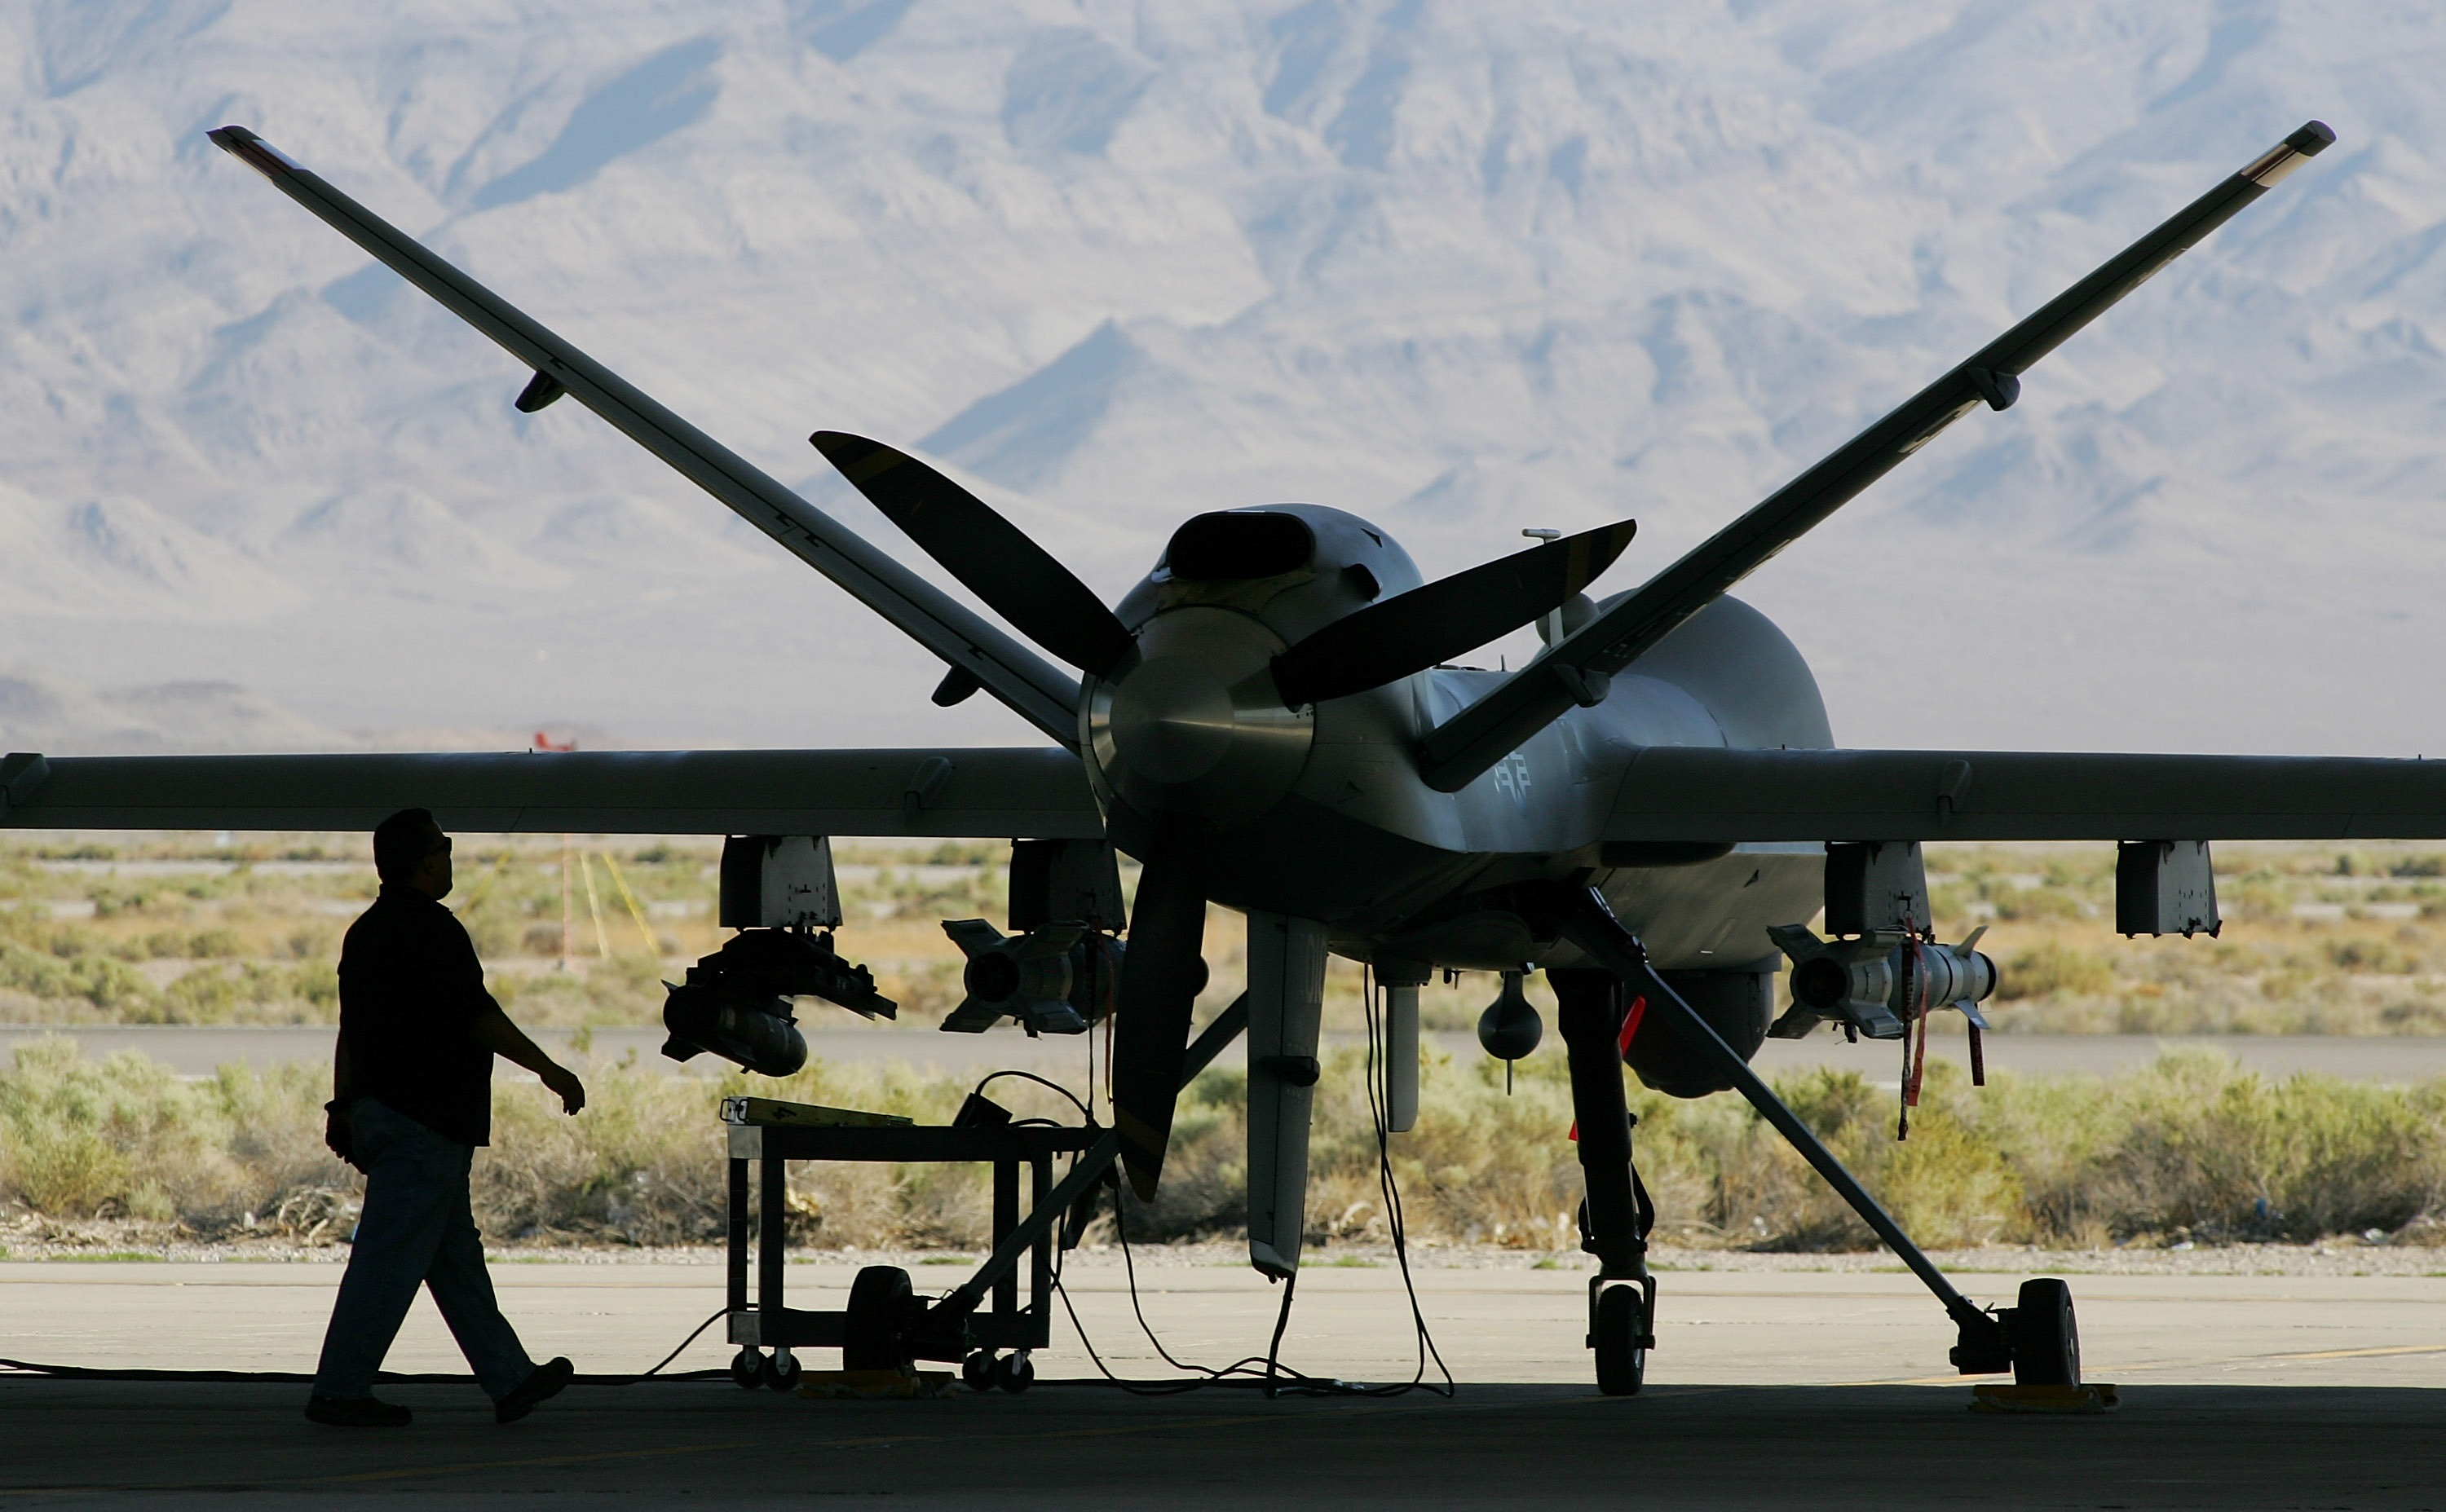 Что происходит на Юго-востоке - Страница 11 The-us-has-issued-new-rules-for-the-foreign-sale-of-military-drones-1424298899